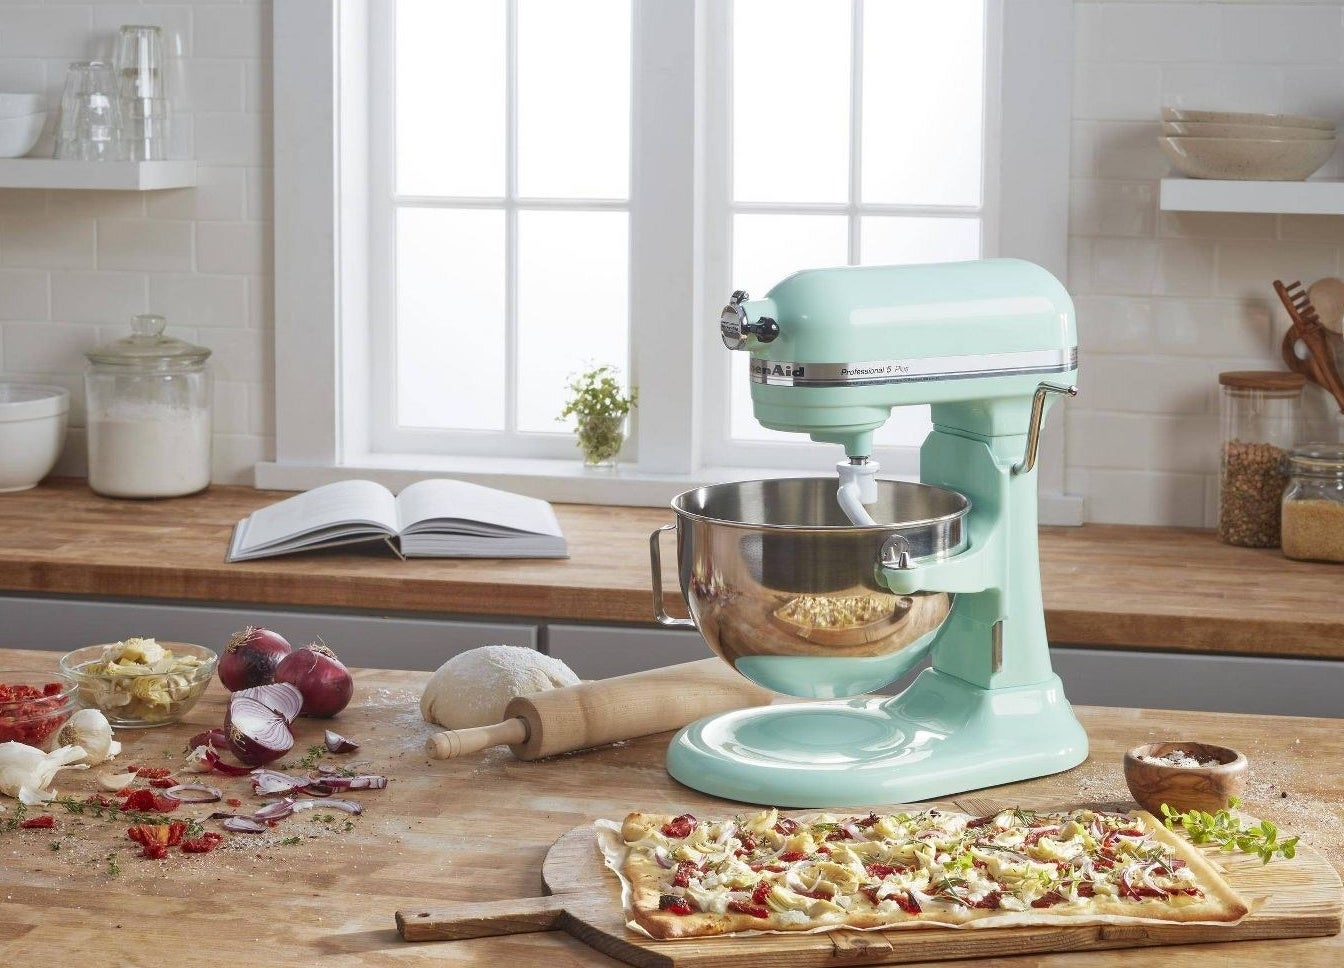 The mixer on a countertop with a pizza and ingredients